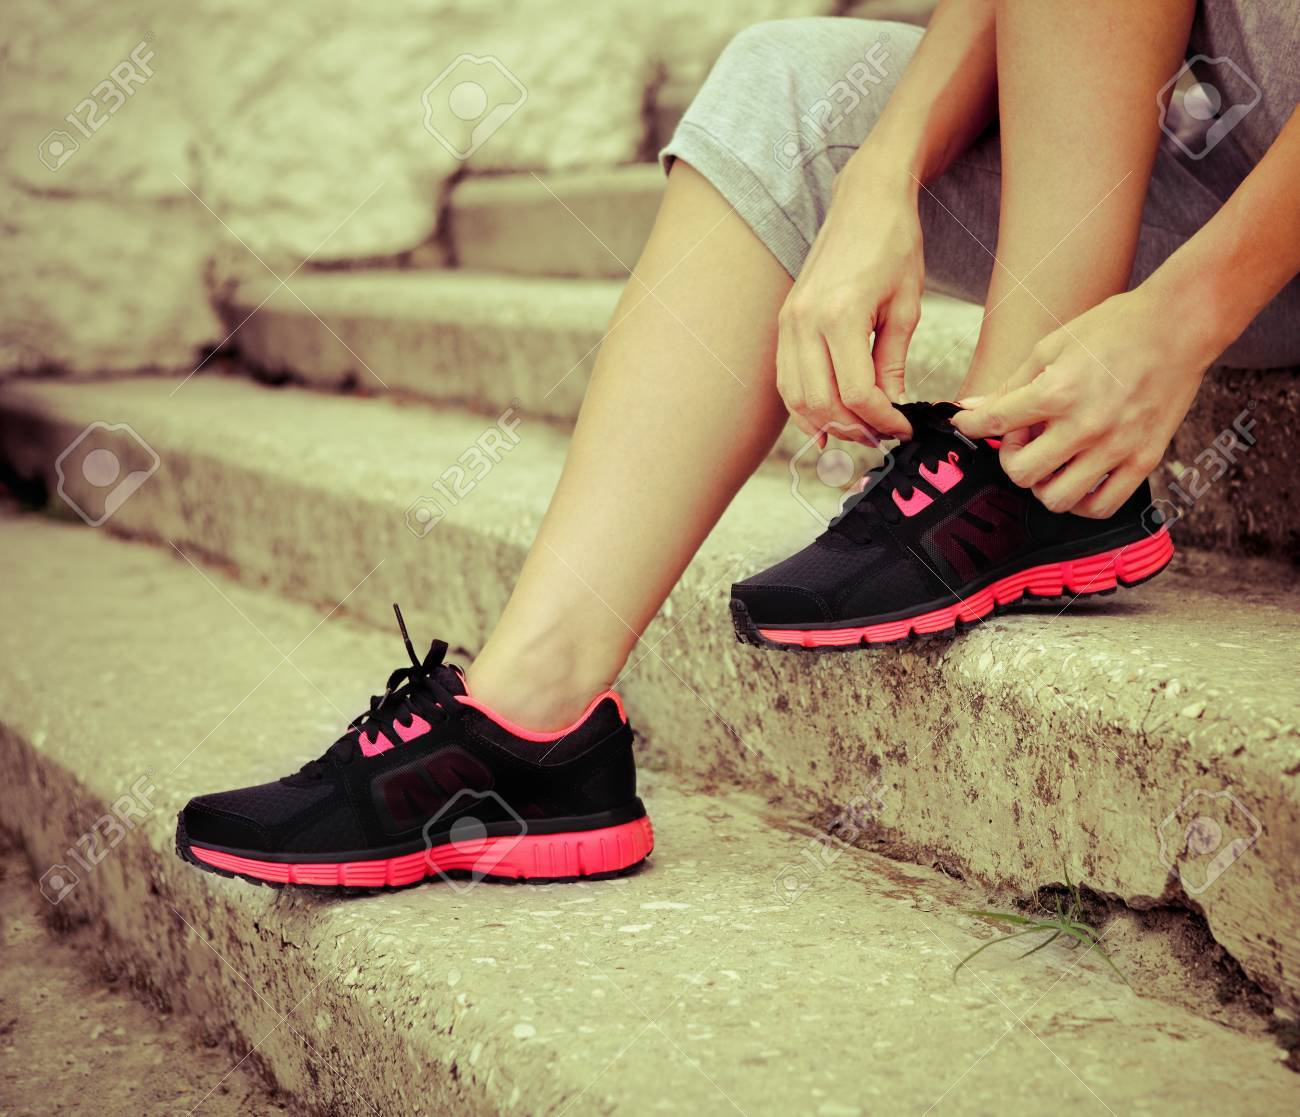 Athlete Girl Trying Running Shoes